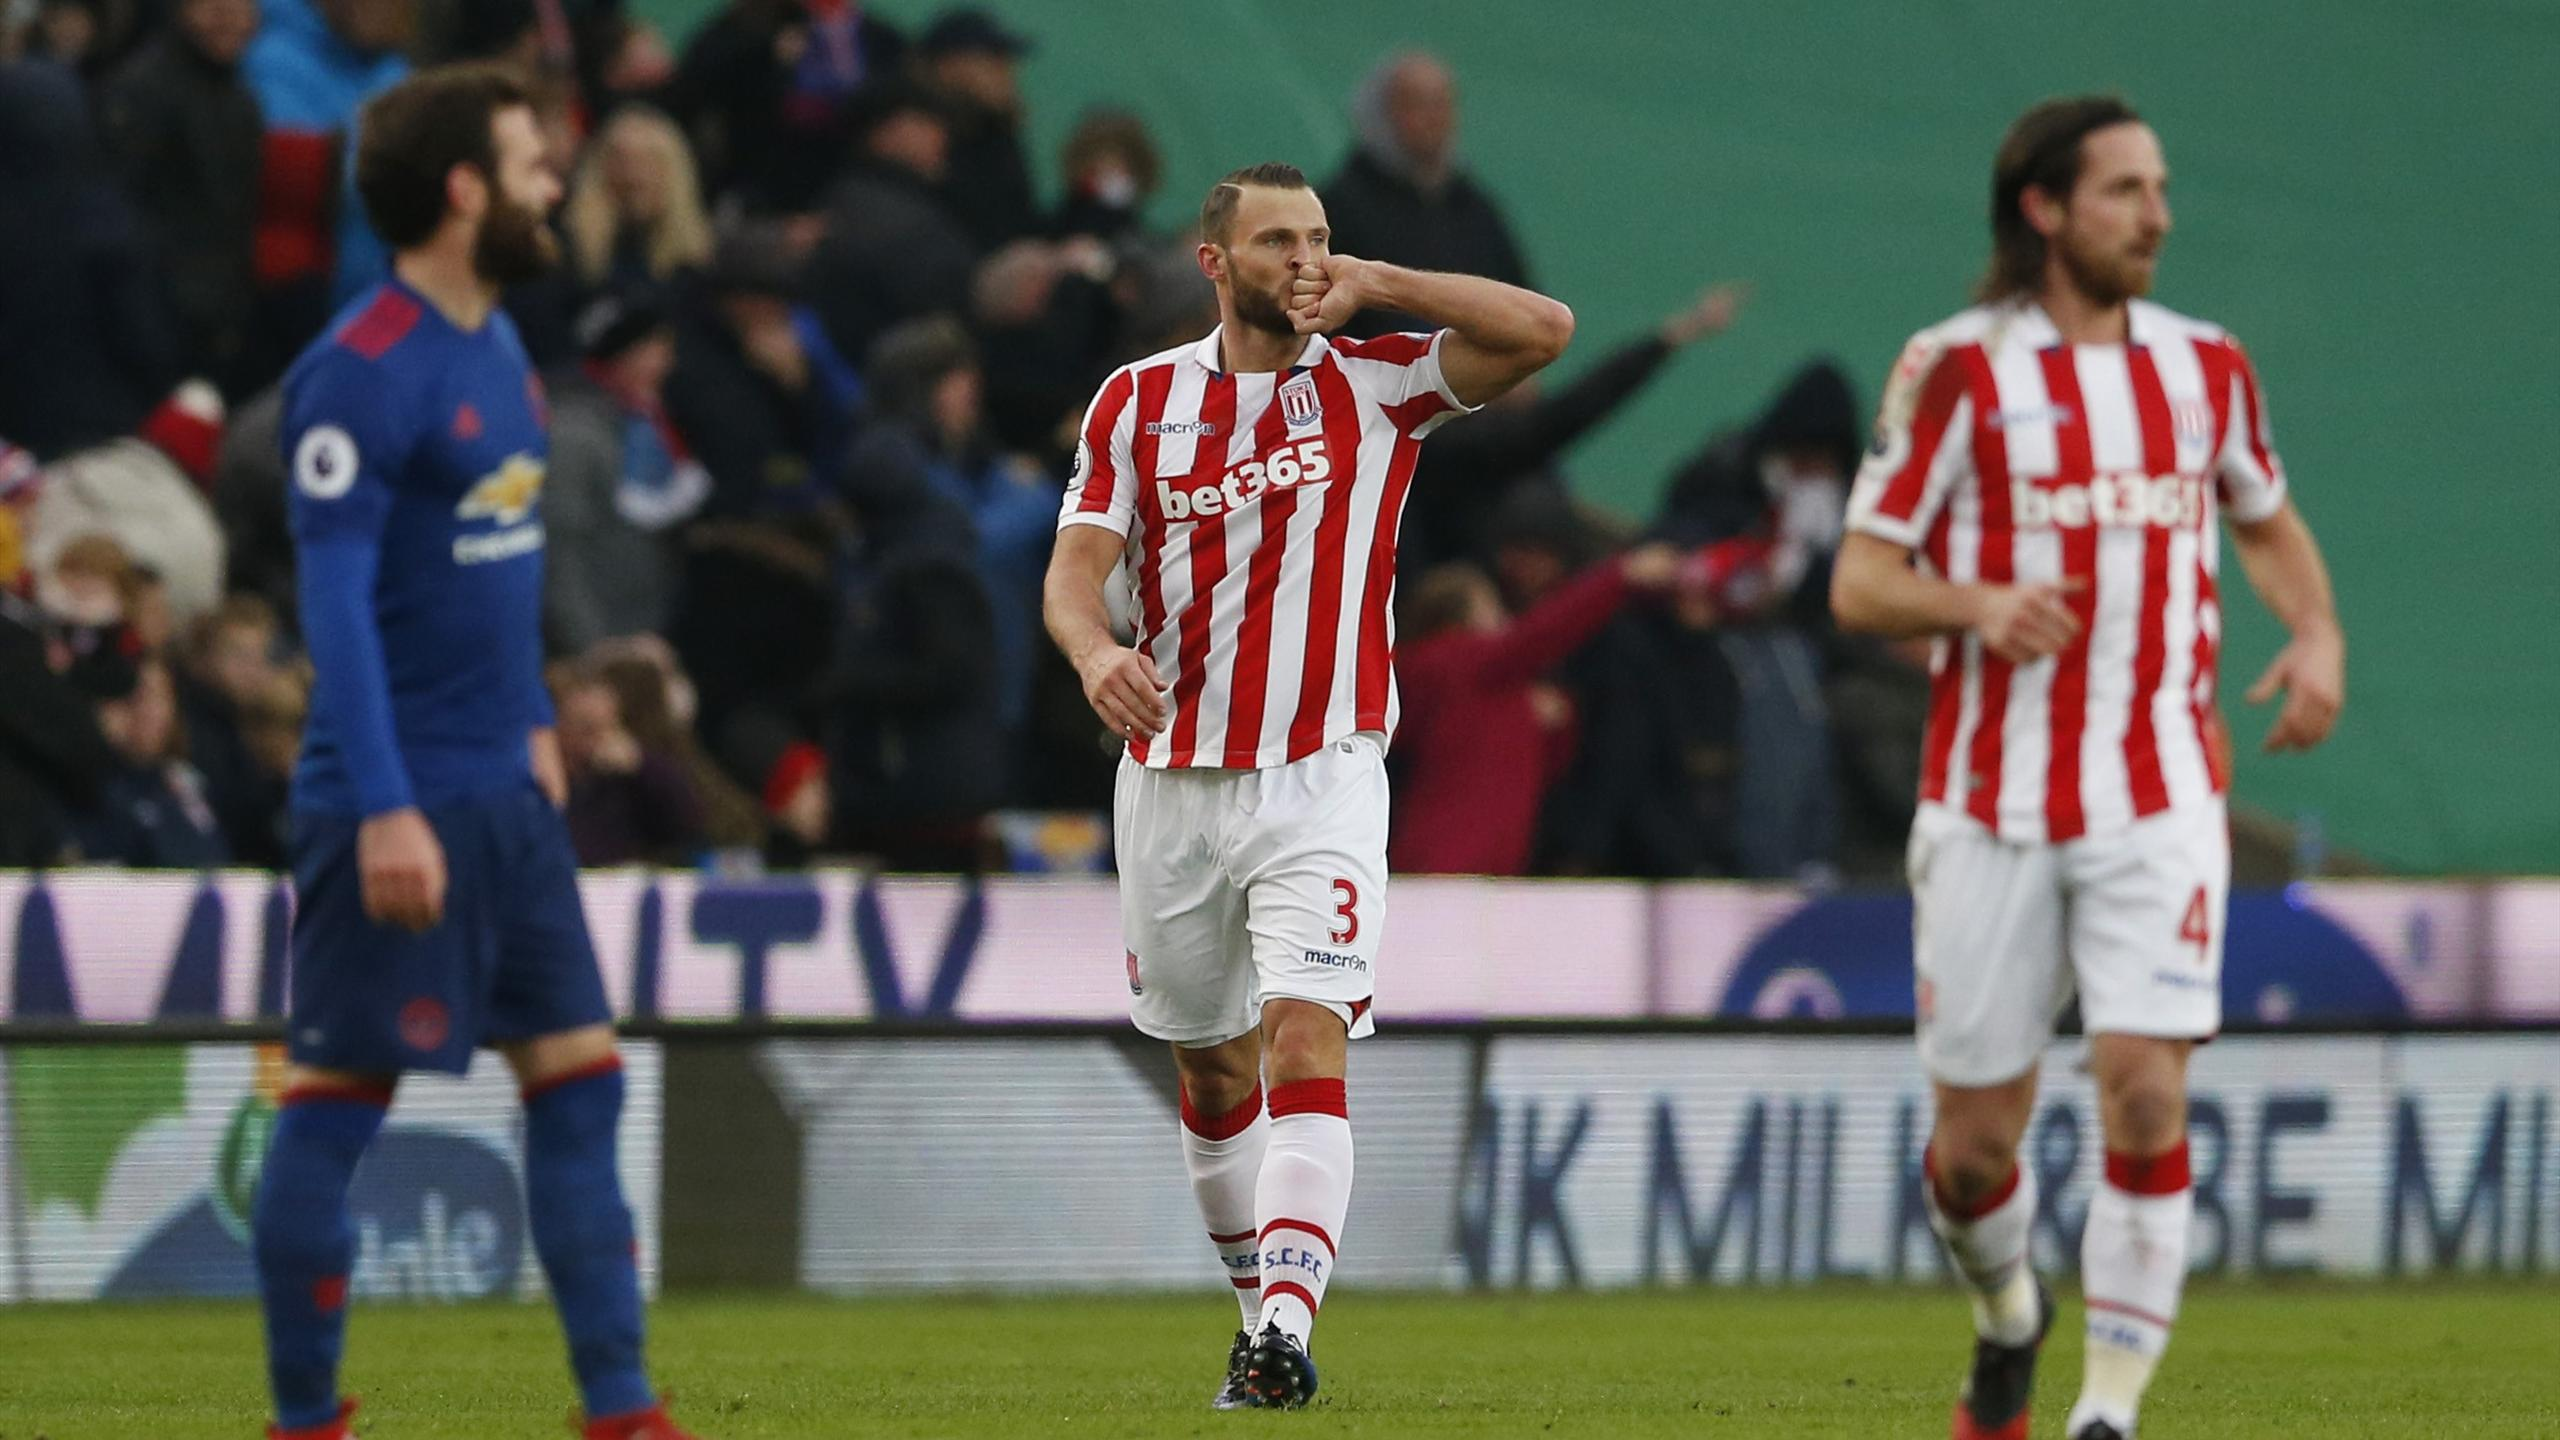 Stoke City's Erik Pieters celebrates after his cross is deflected by Manchester United's Juan Mata